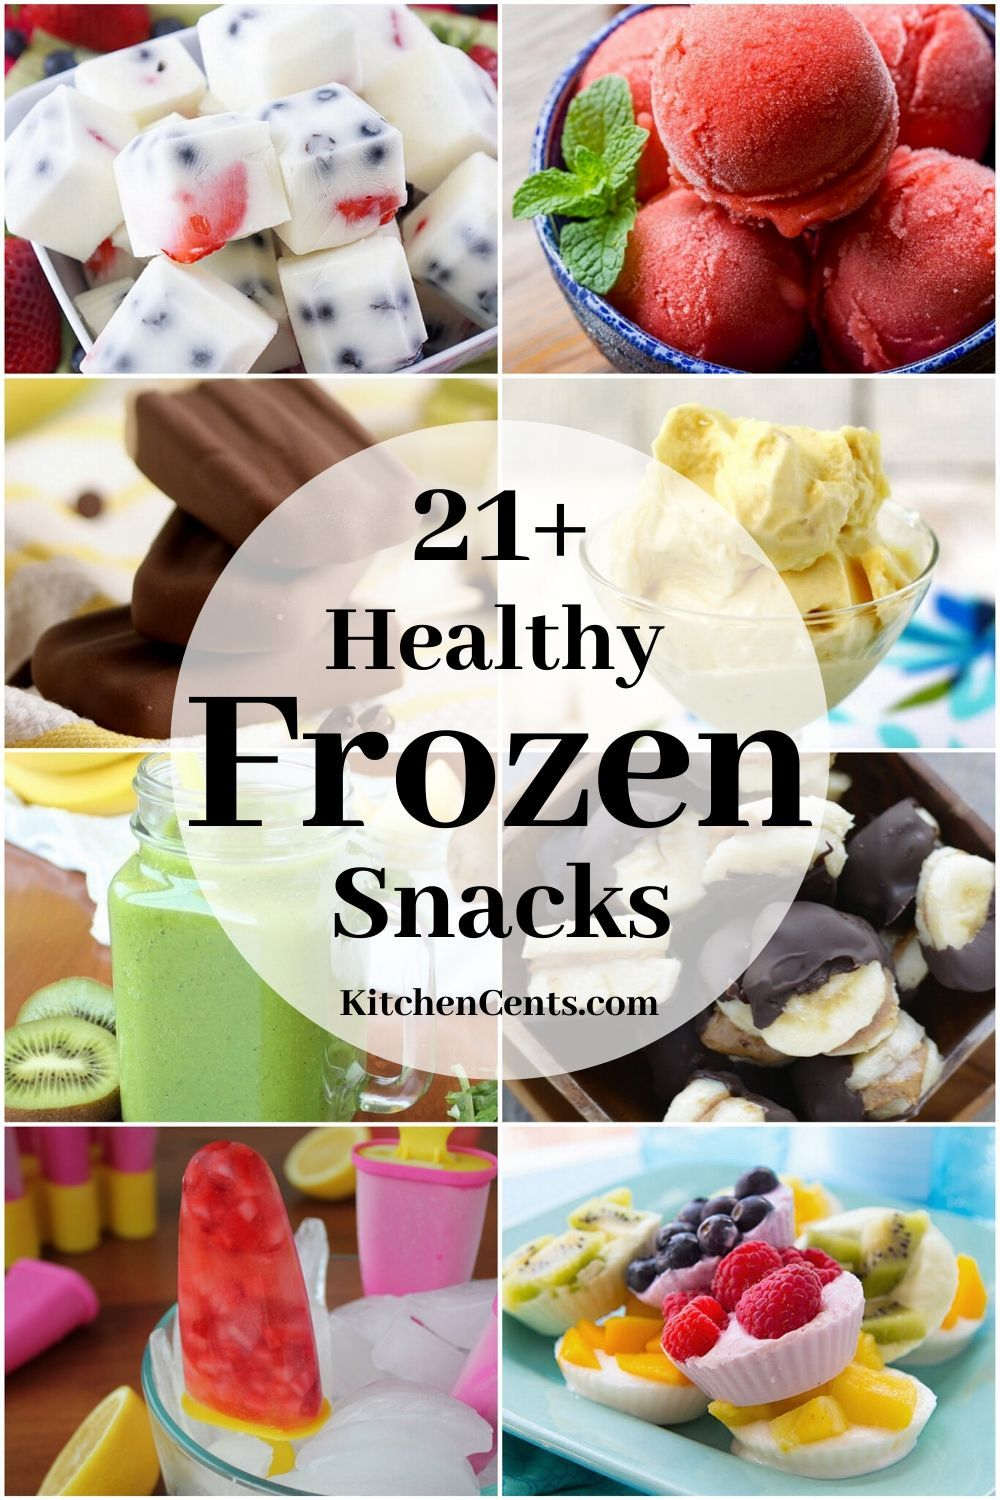 21+ Healthy Frozen Snacks